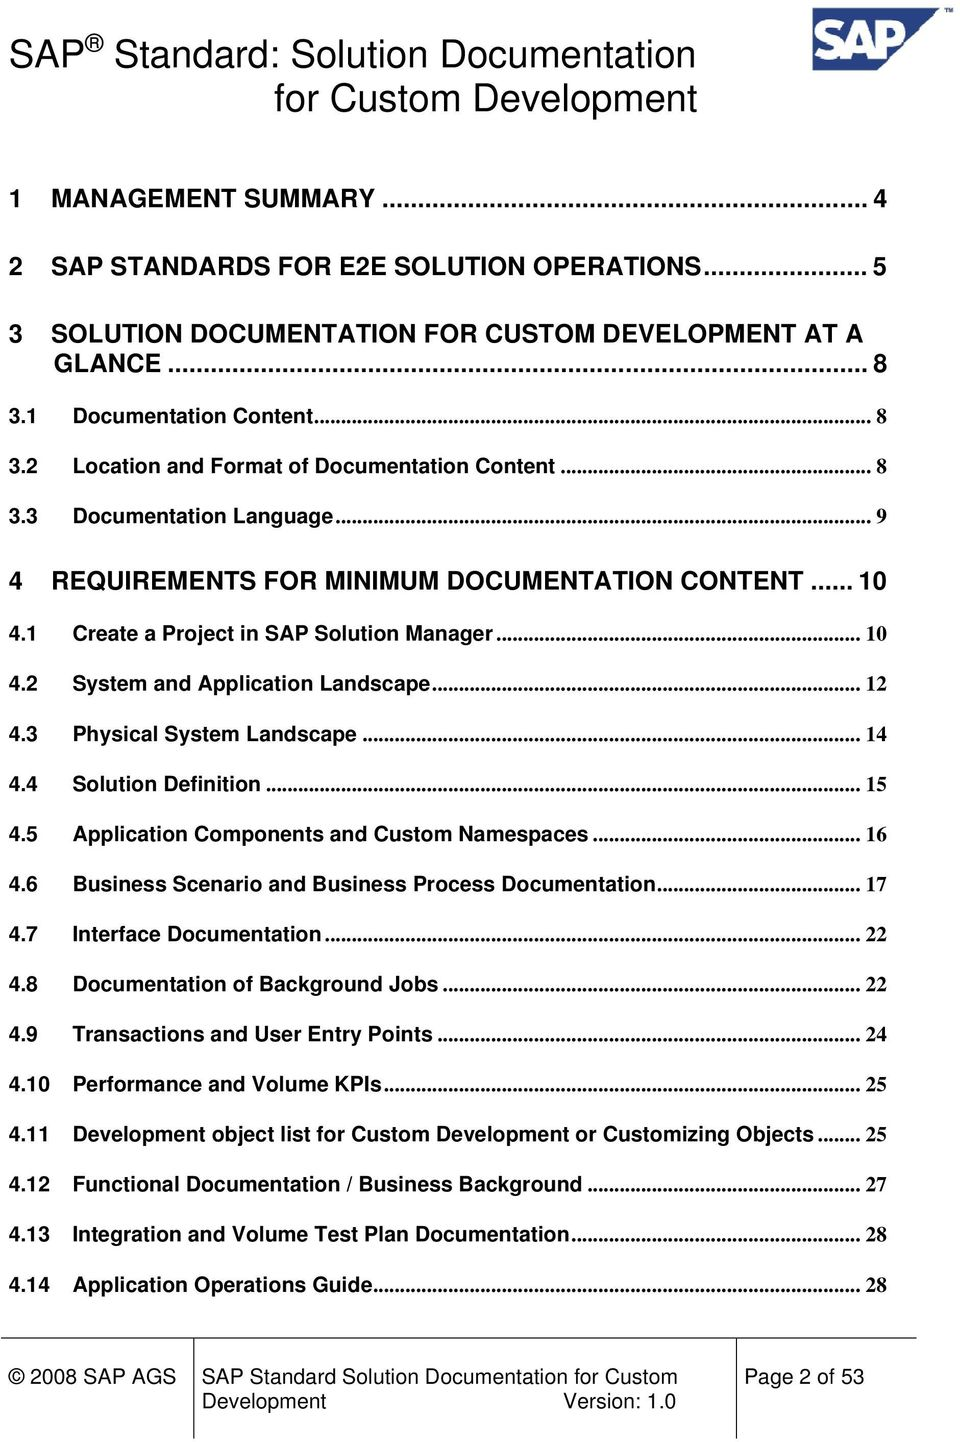 3 Physical System Landscape... 14 4.4 Solution Definition... 15 4.5 Application Components and Custom Namespaces... 16 4.6 Business Scenario and Business Process Documentation... 17 4.